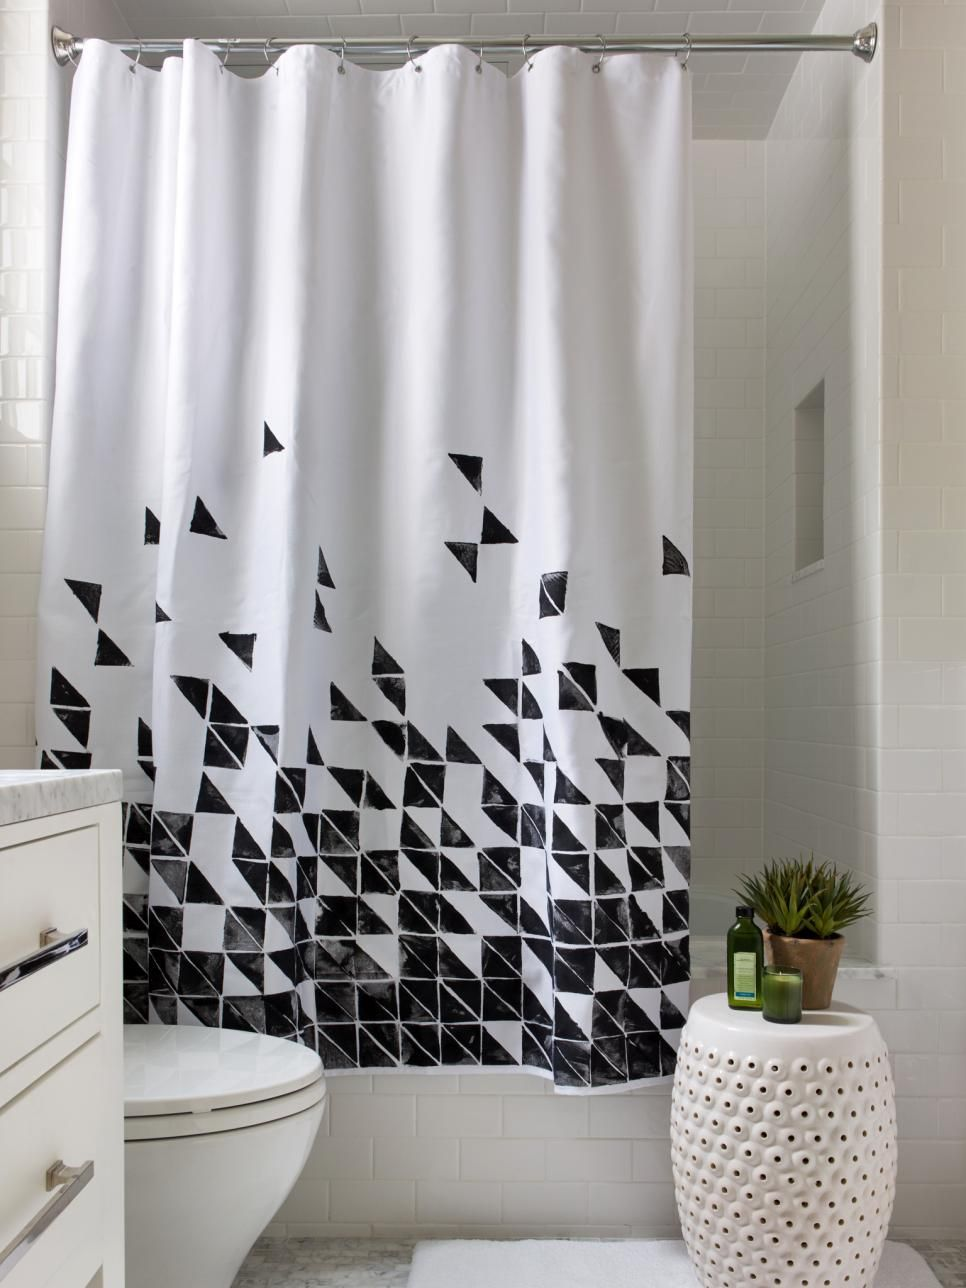 3 Easy Ways To Upcycle A Plain Shower Curtain Black Shower